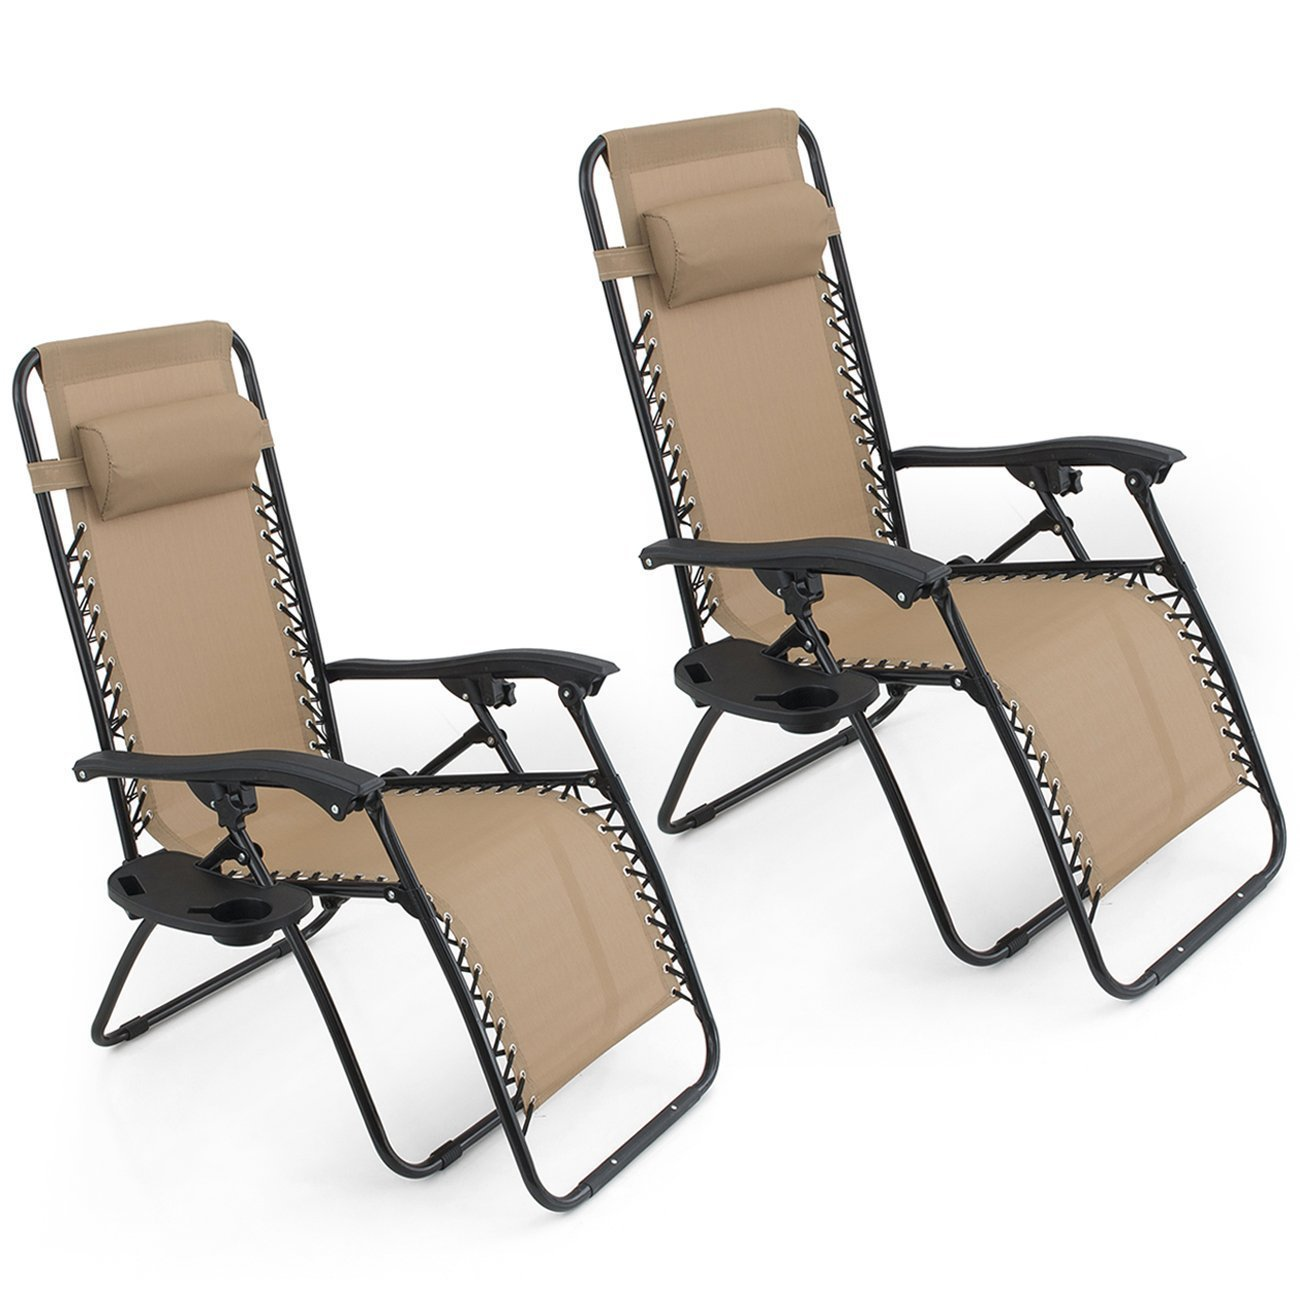 Arksen zero gravity chair pack of 2 review for Chair zero gravity